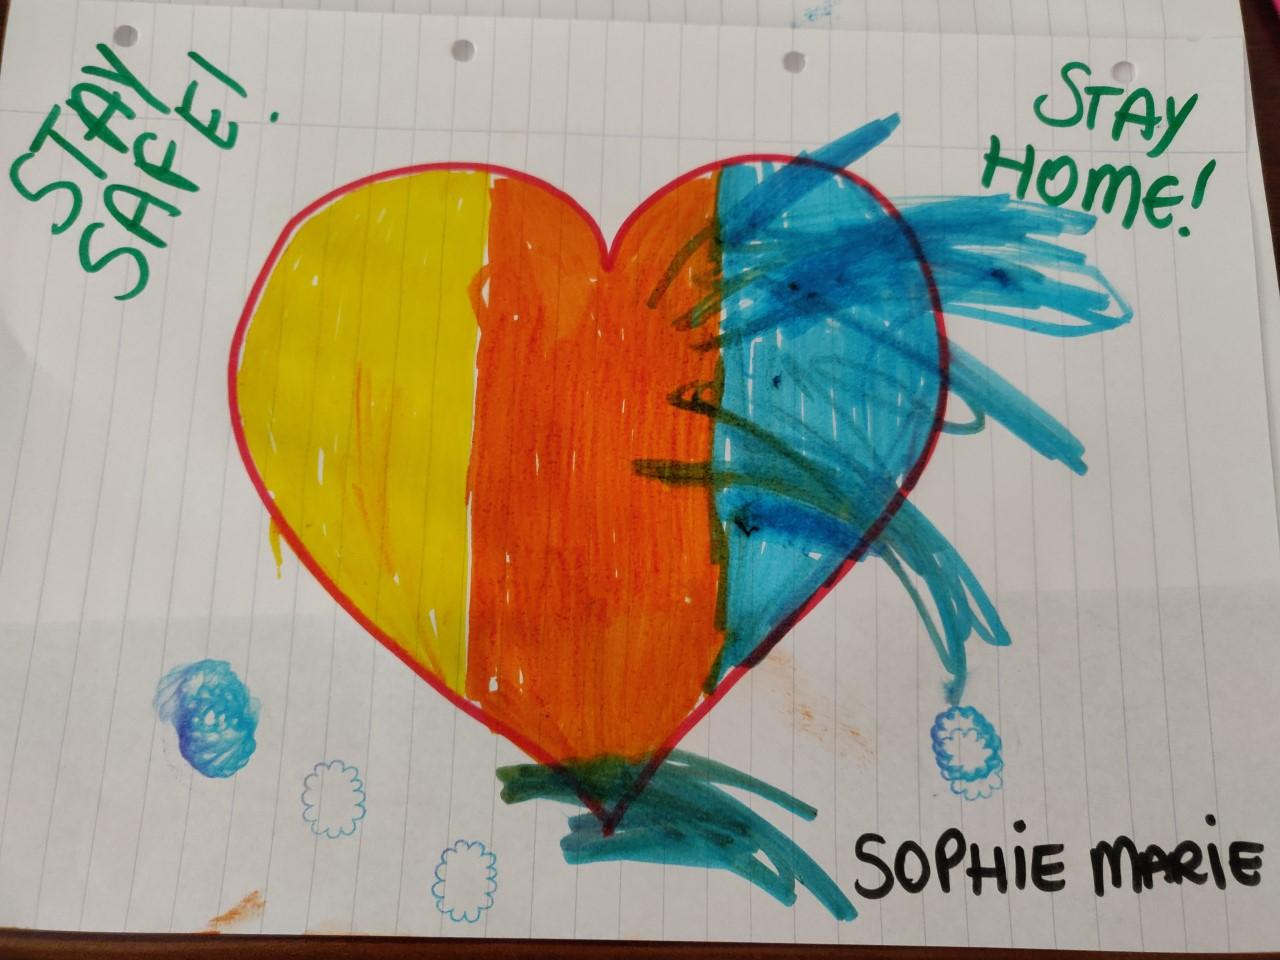 Sophie Marie (2) wants everyone to stay safe at home.